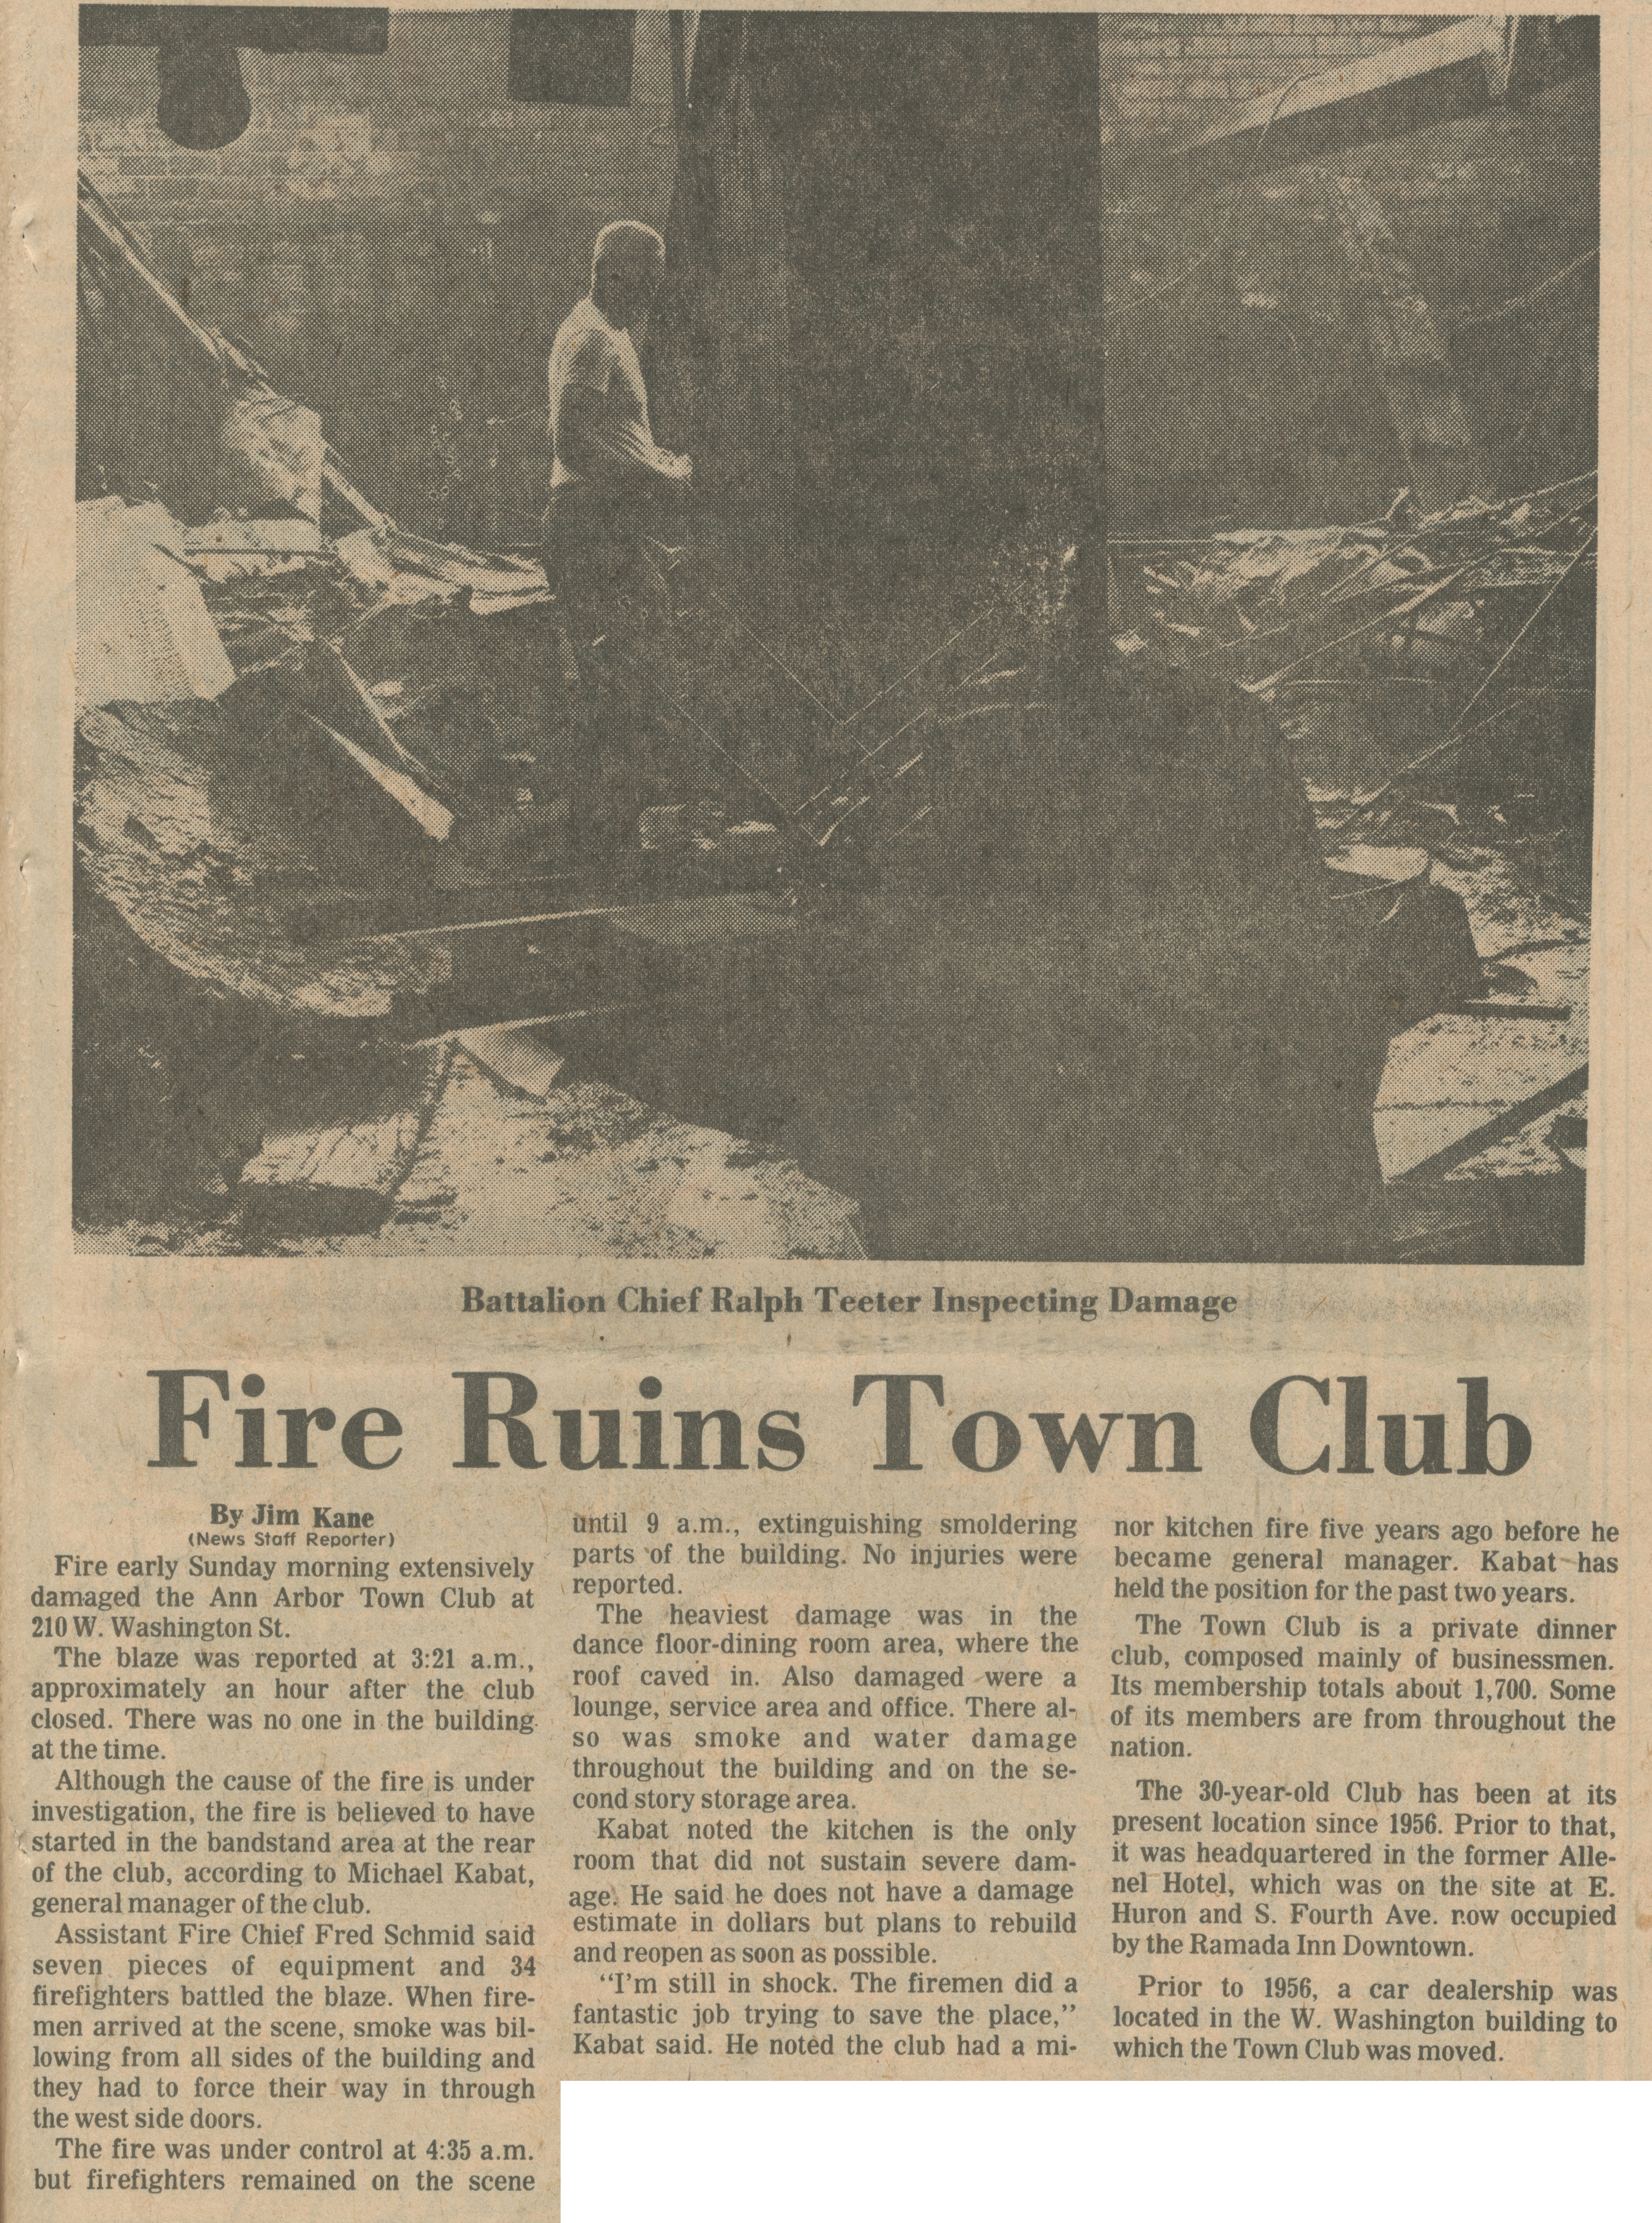 Fire Ruins Town Club image